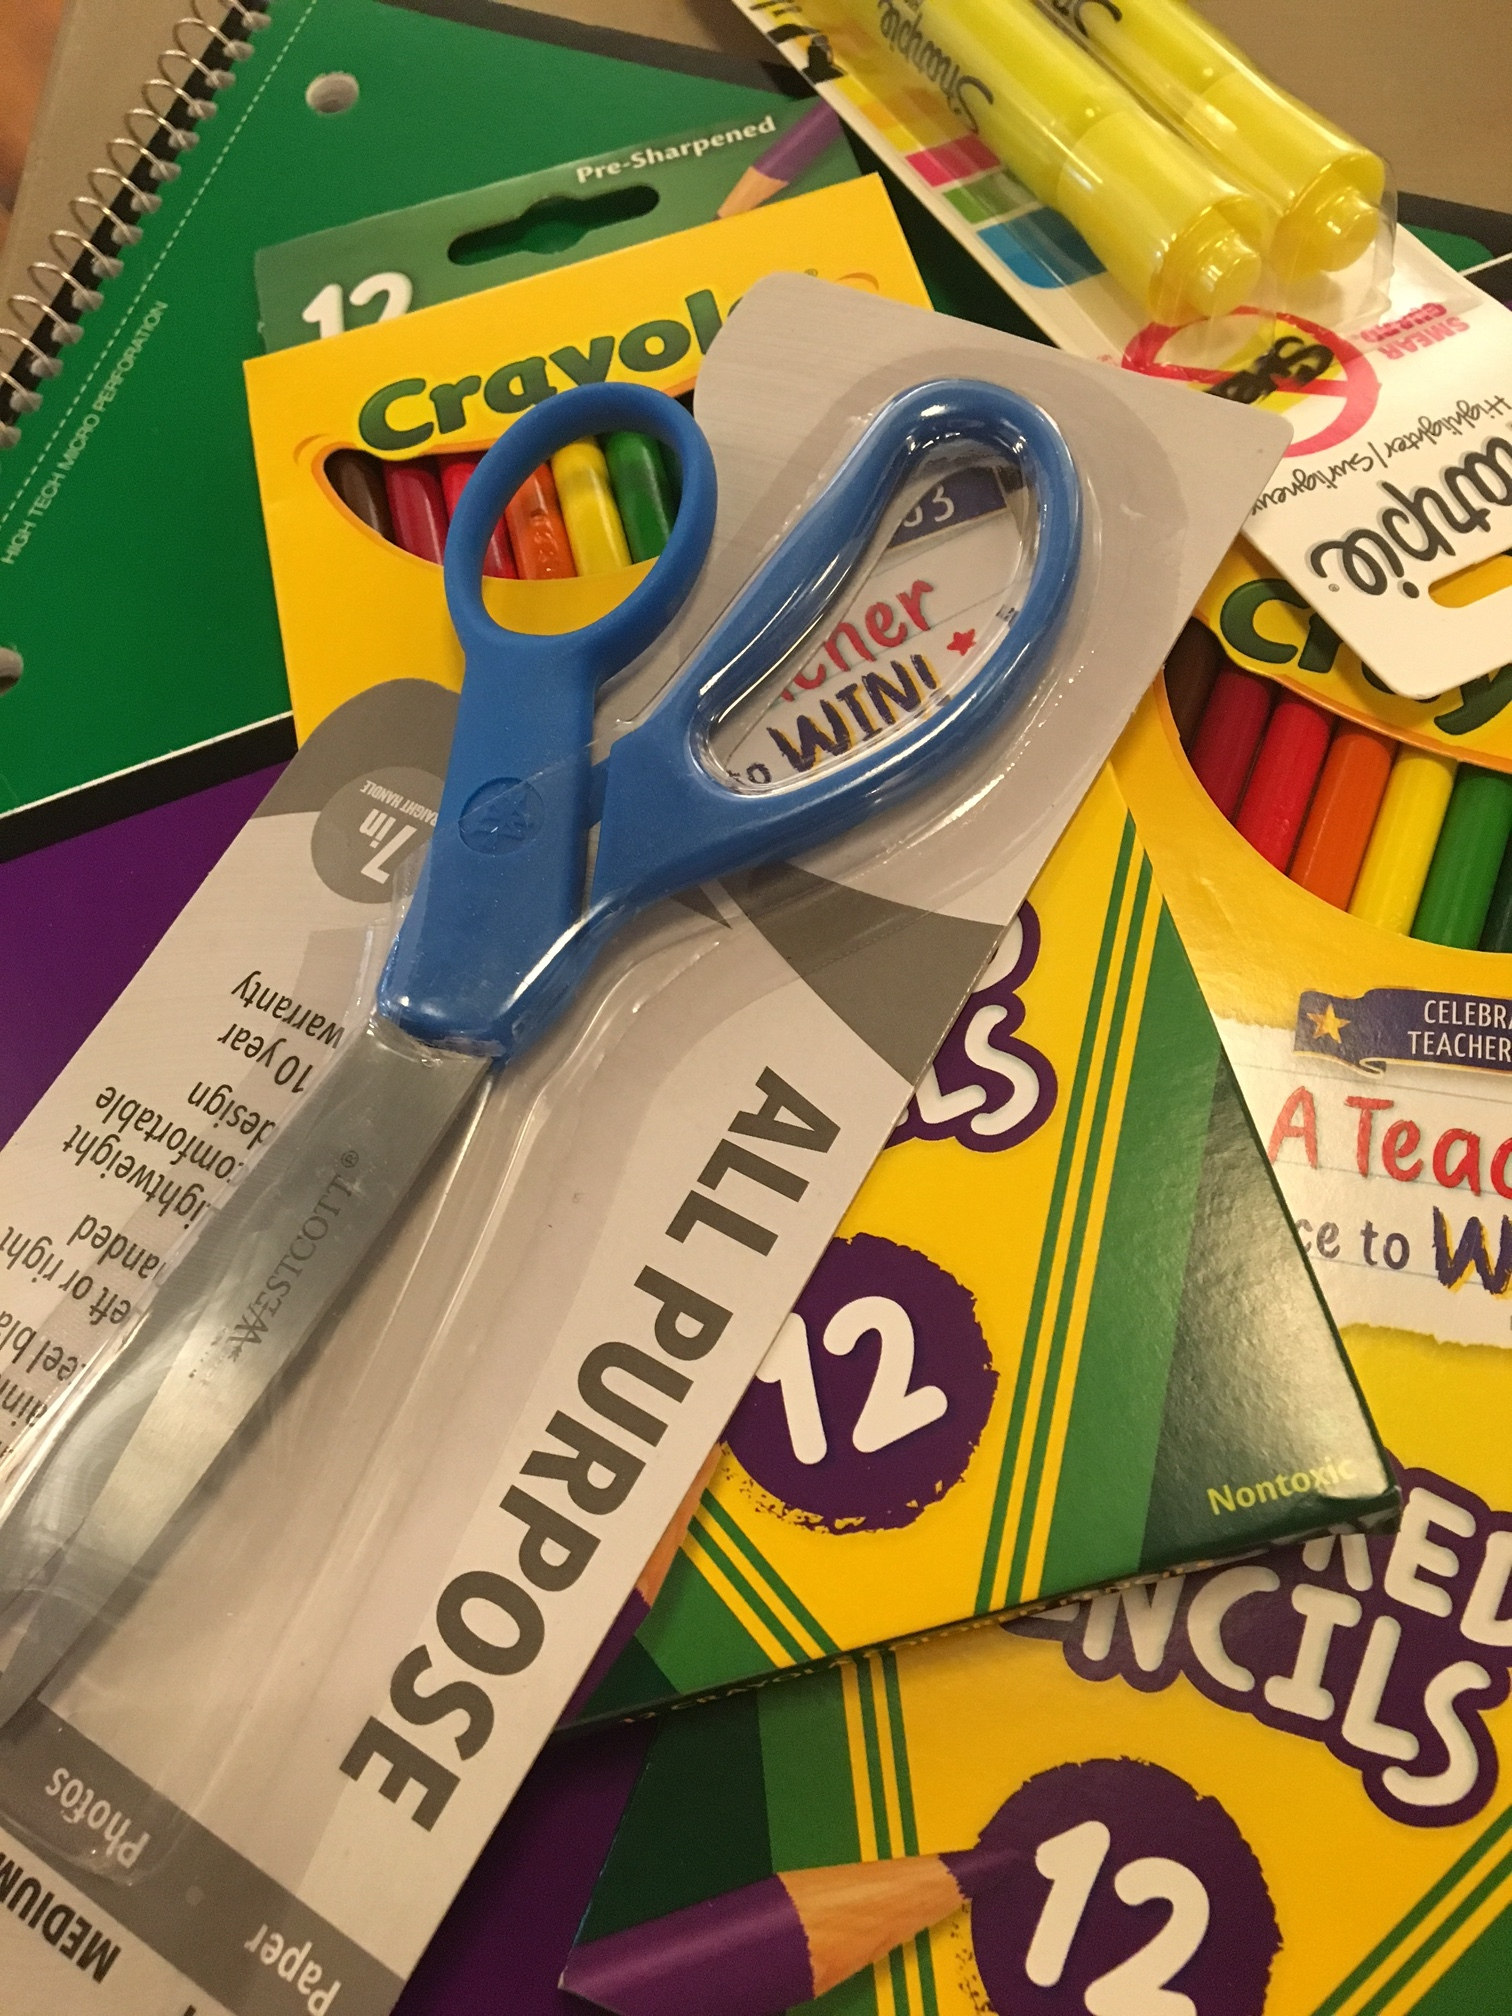 Budget Blinds of Lee's Summit, located in downtown Lee's Summit, will be collecting school supplies for Coldwater of Lee's Summit from 5-8 p.m. Friday.